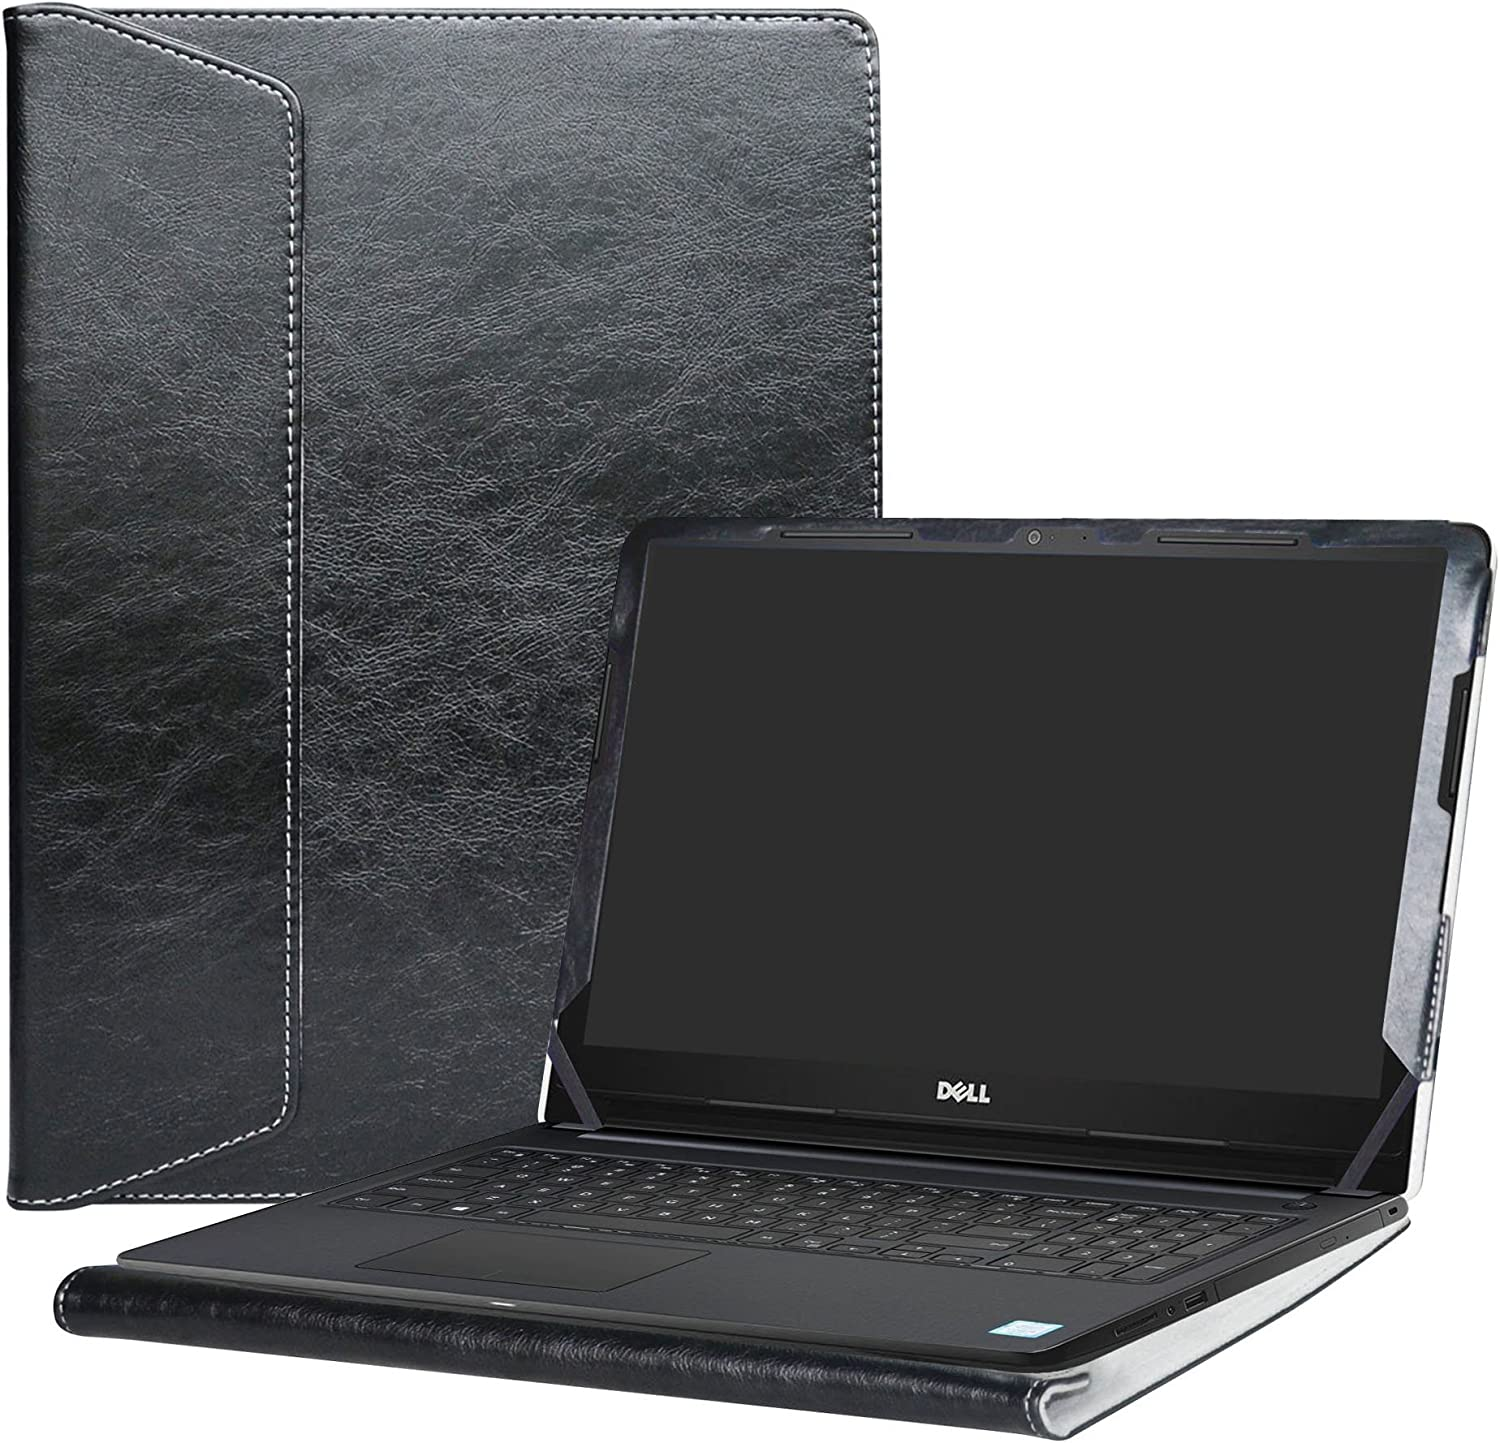 "Alapmk Protective Case Cover For 15.6"" Dell Inspiron 15 3593 3595 3585 3584 3583 3582 3581 3580 3573 3567 3565 3568 3576 3573 3551 3552 3558 Series Laptop(Note:Not fit 3542 3543 3541),Black"